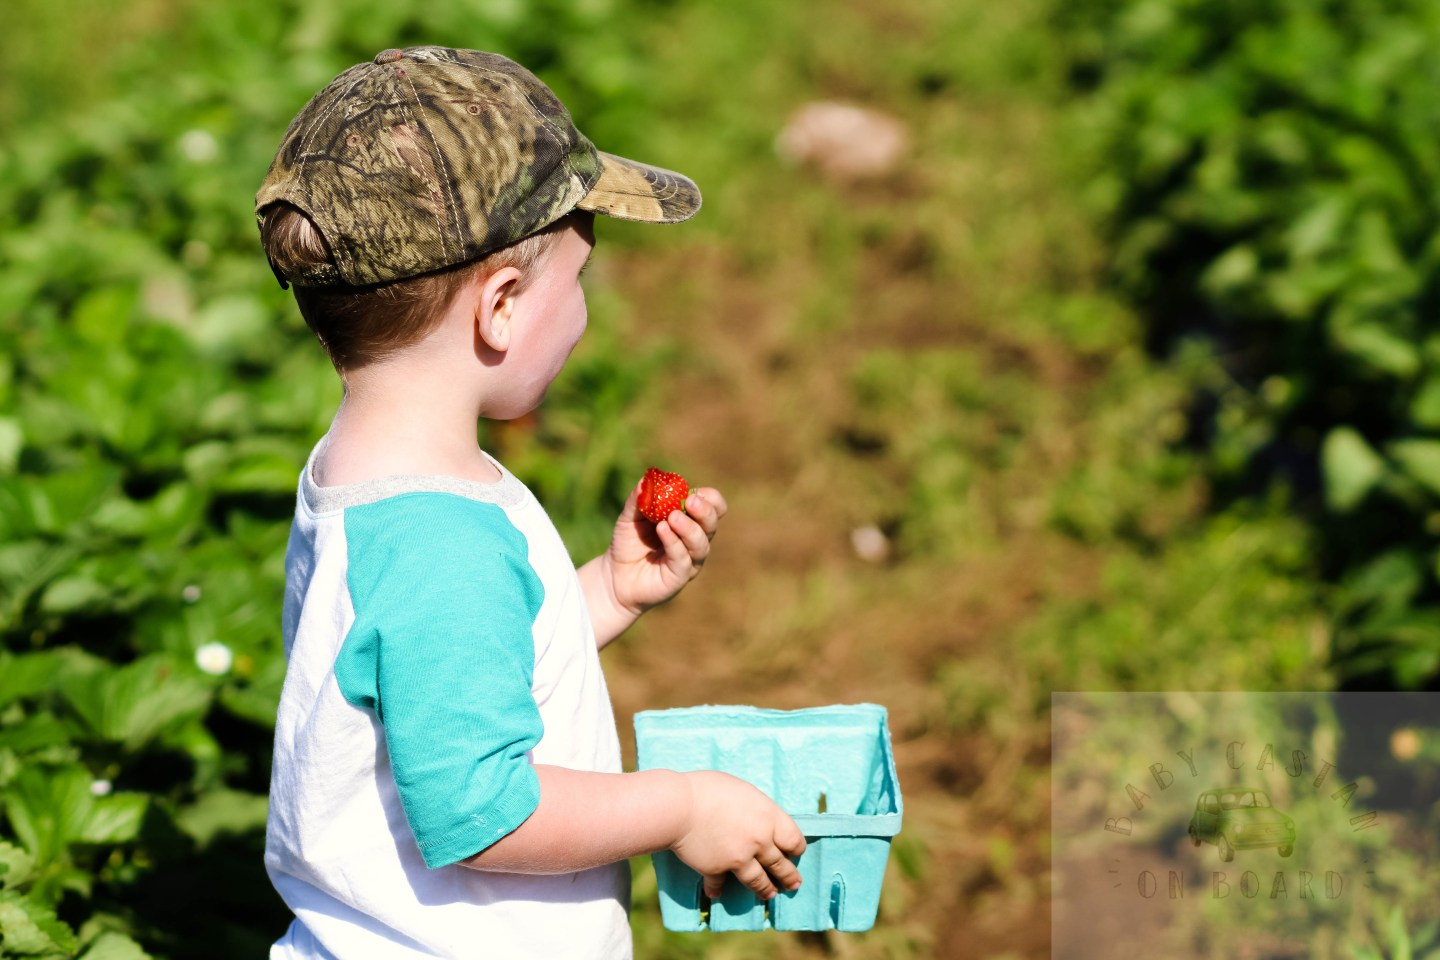 Fun Spring Adventure Strawberry Picking With a Toddler